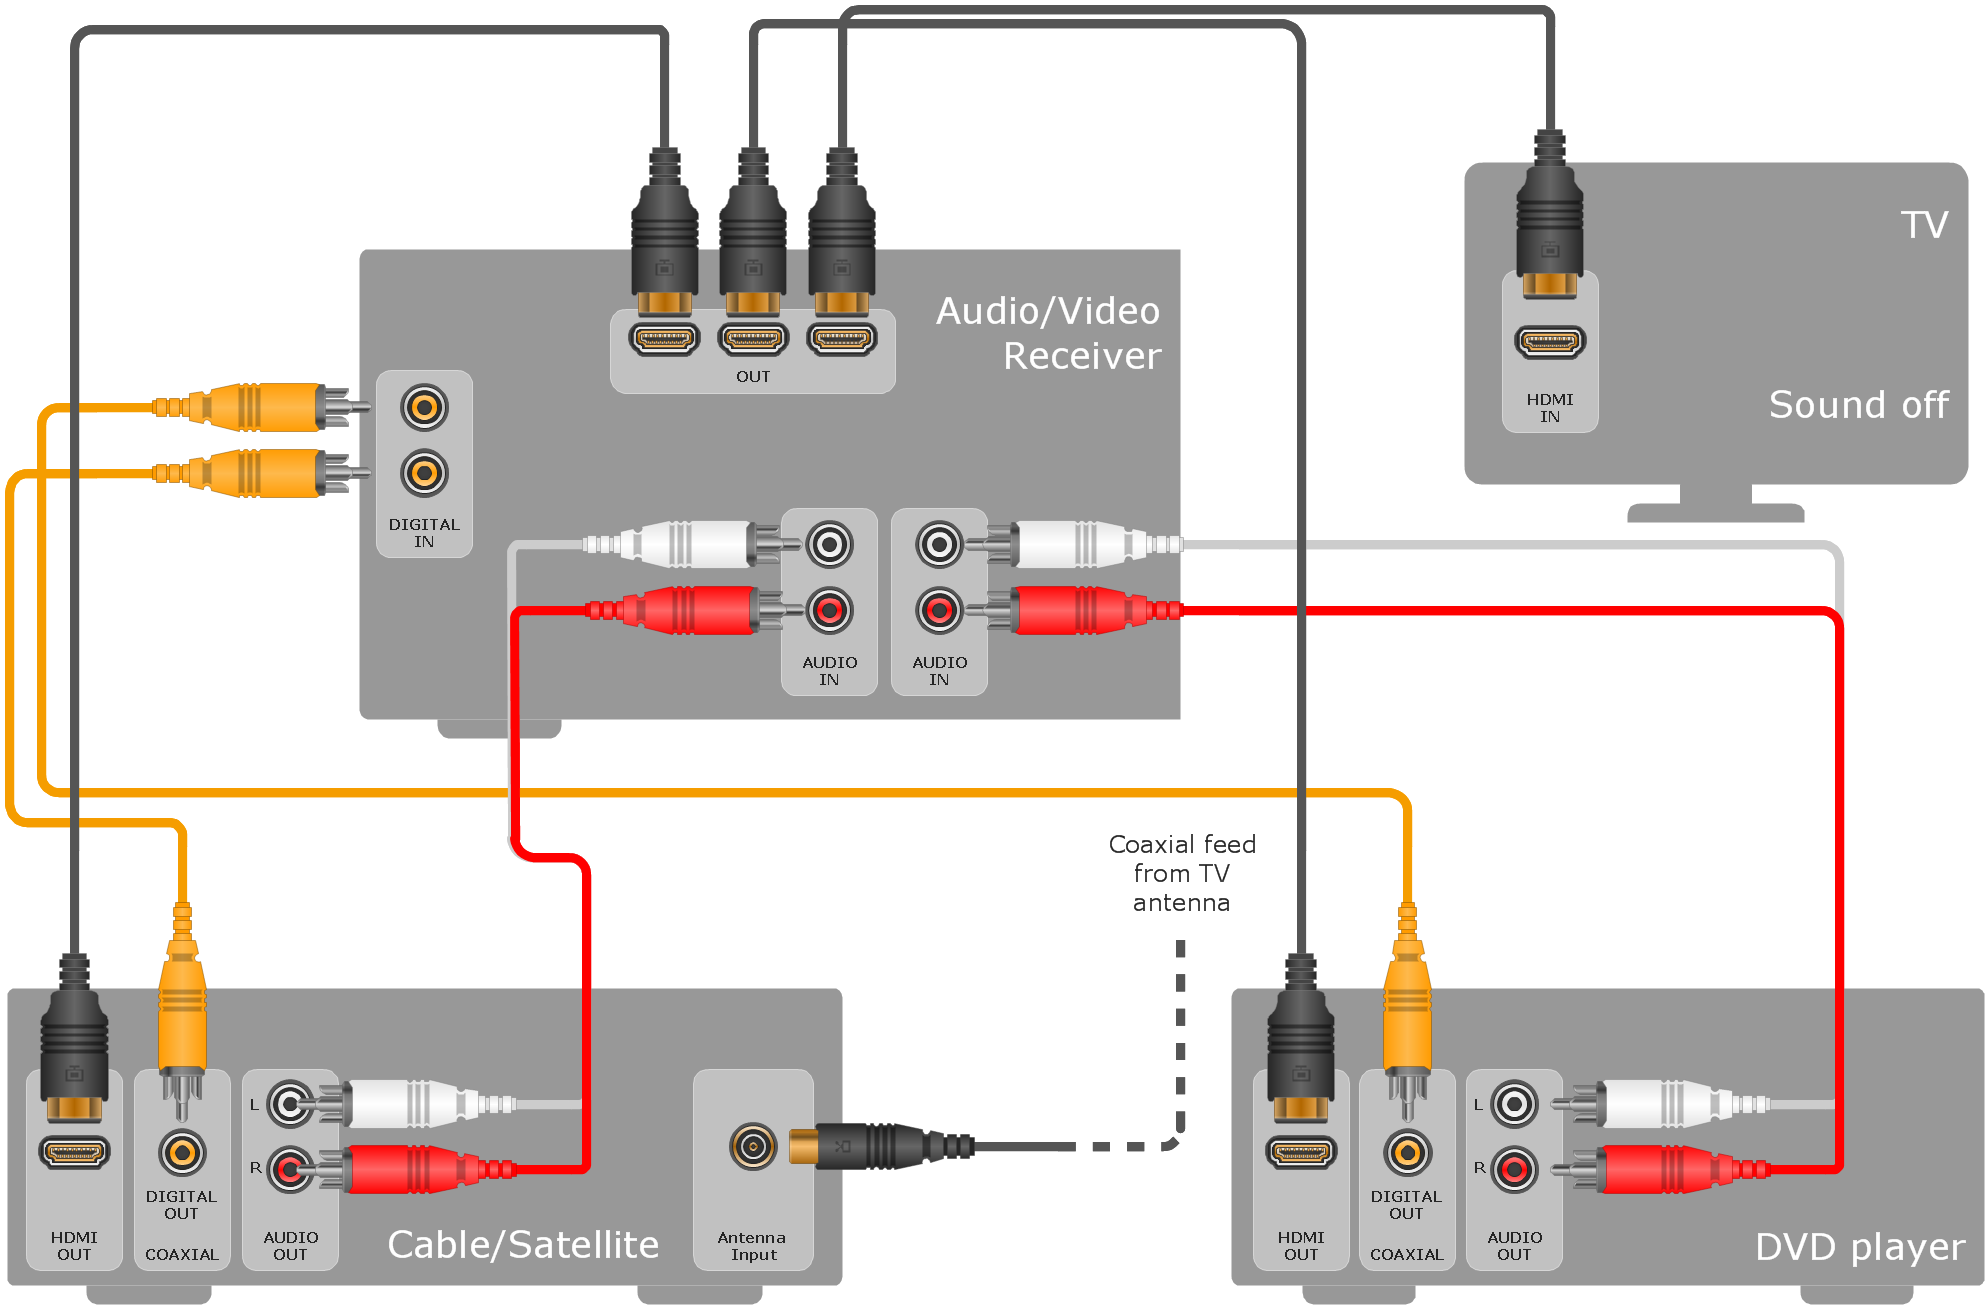 audio & video connections | how to use house electrical plan software |  audio & video connector types | diagram home audio system  conceptdraw.com